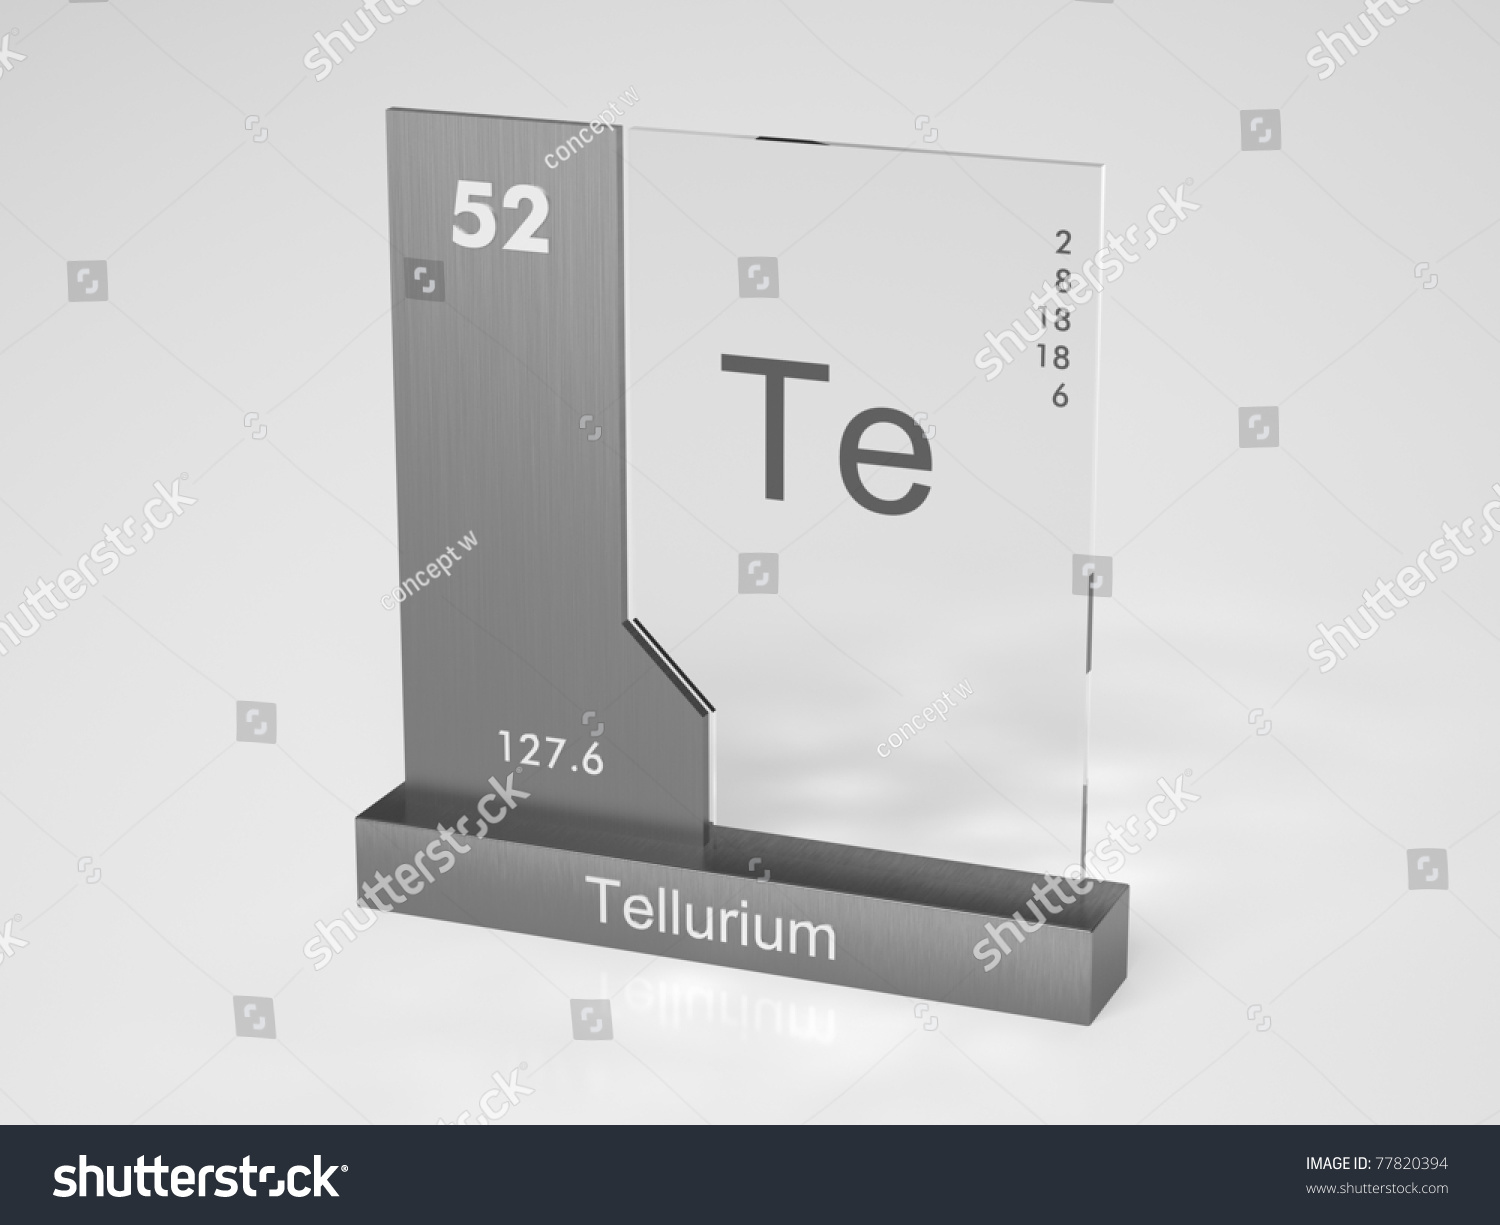 Tellurium symbol te chemical element periodic stock illustration tellurium symbol te chemical element of the periodic table gamestrikefo Choice Image